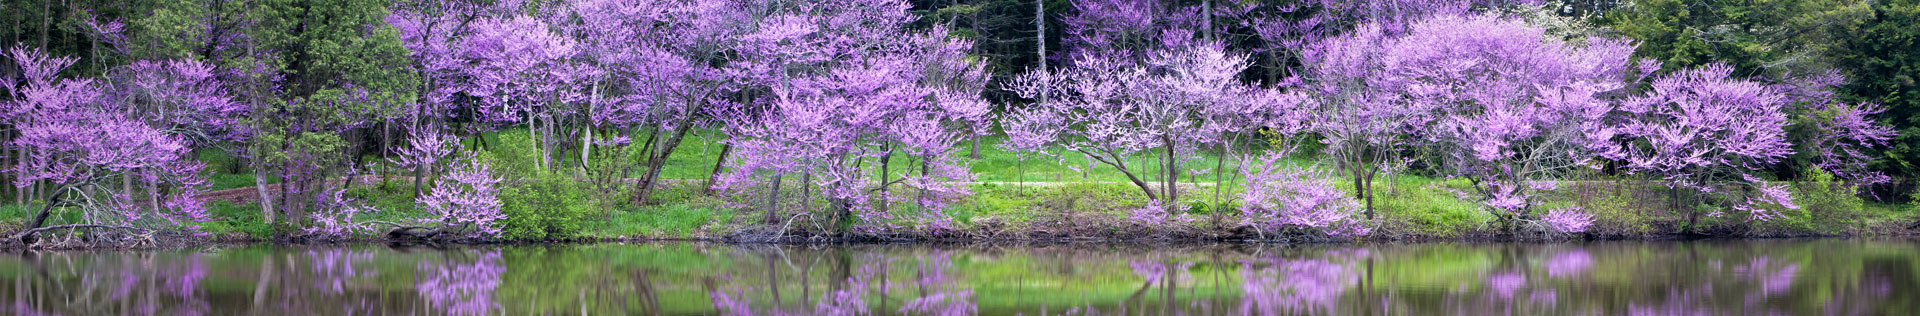 Blooming purple crape myrtle trees by the river